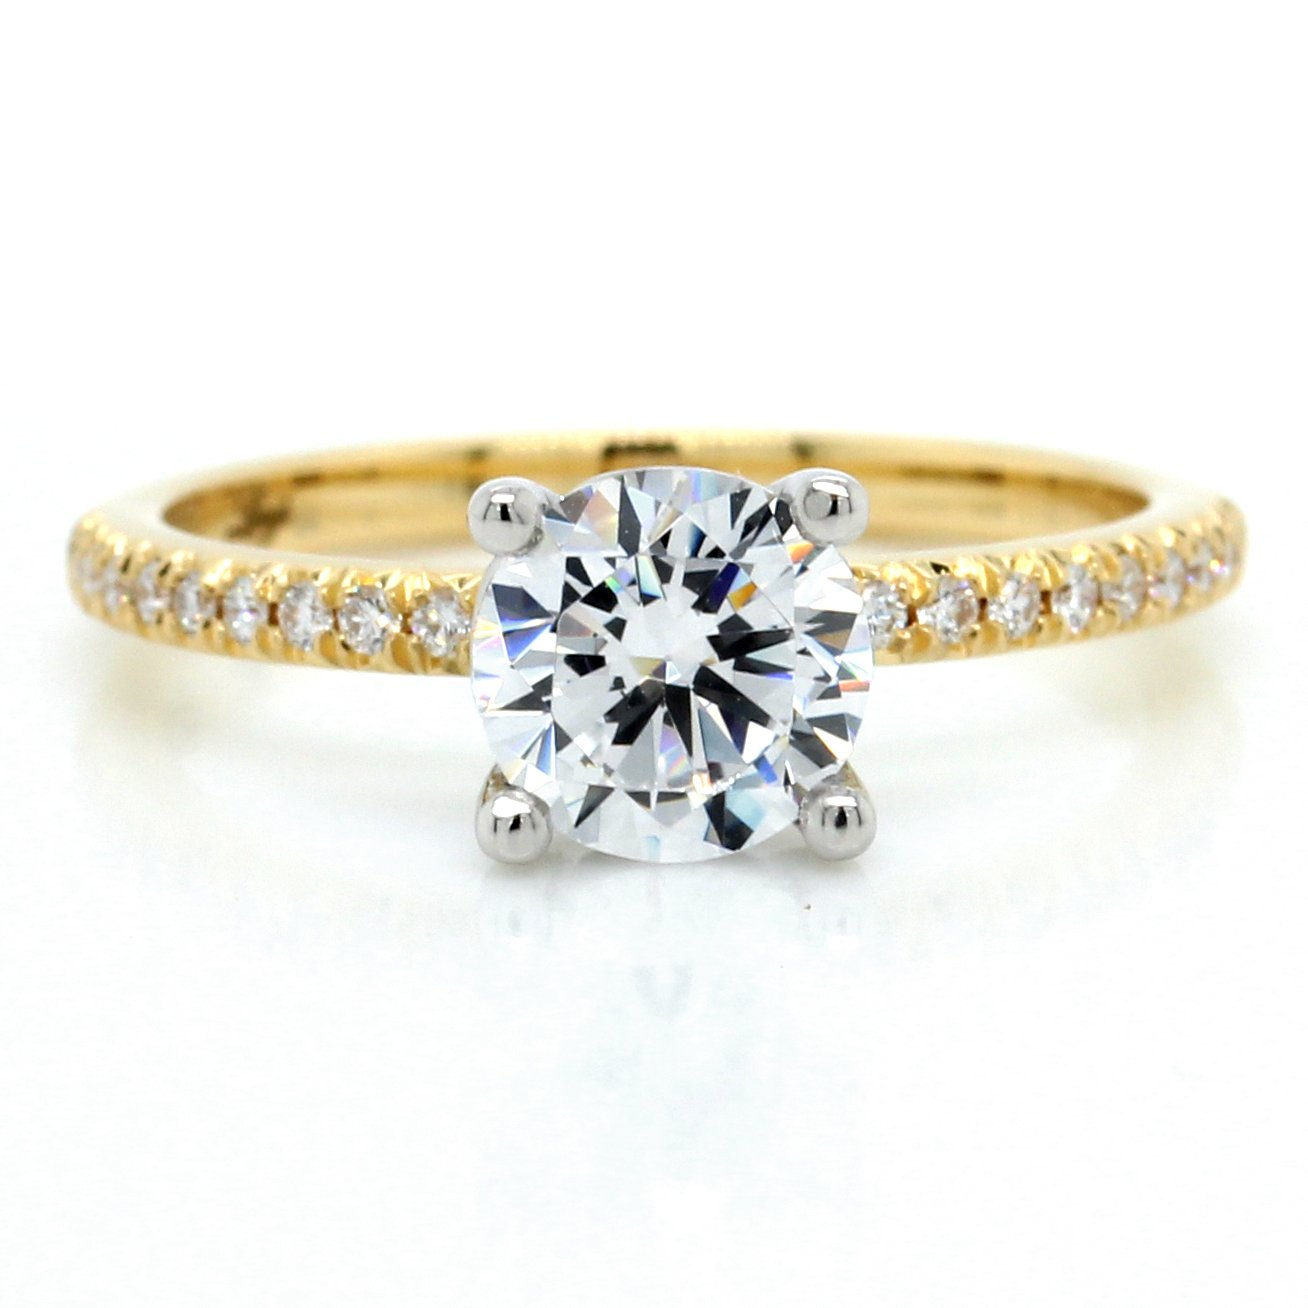 18K Yellow Gold French Cut Engagement Ring